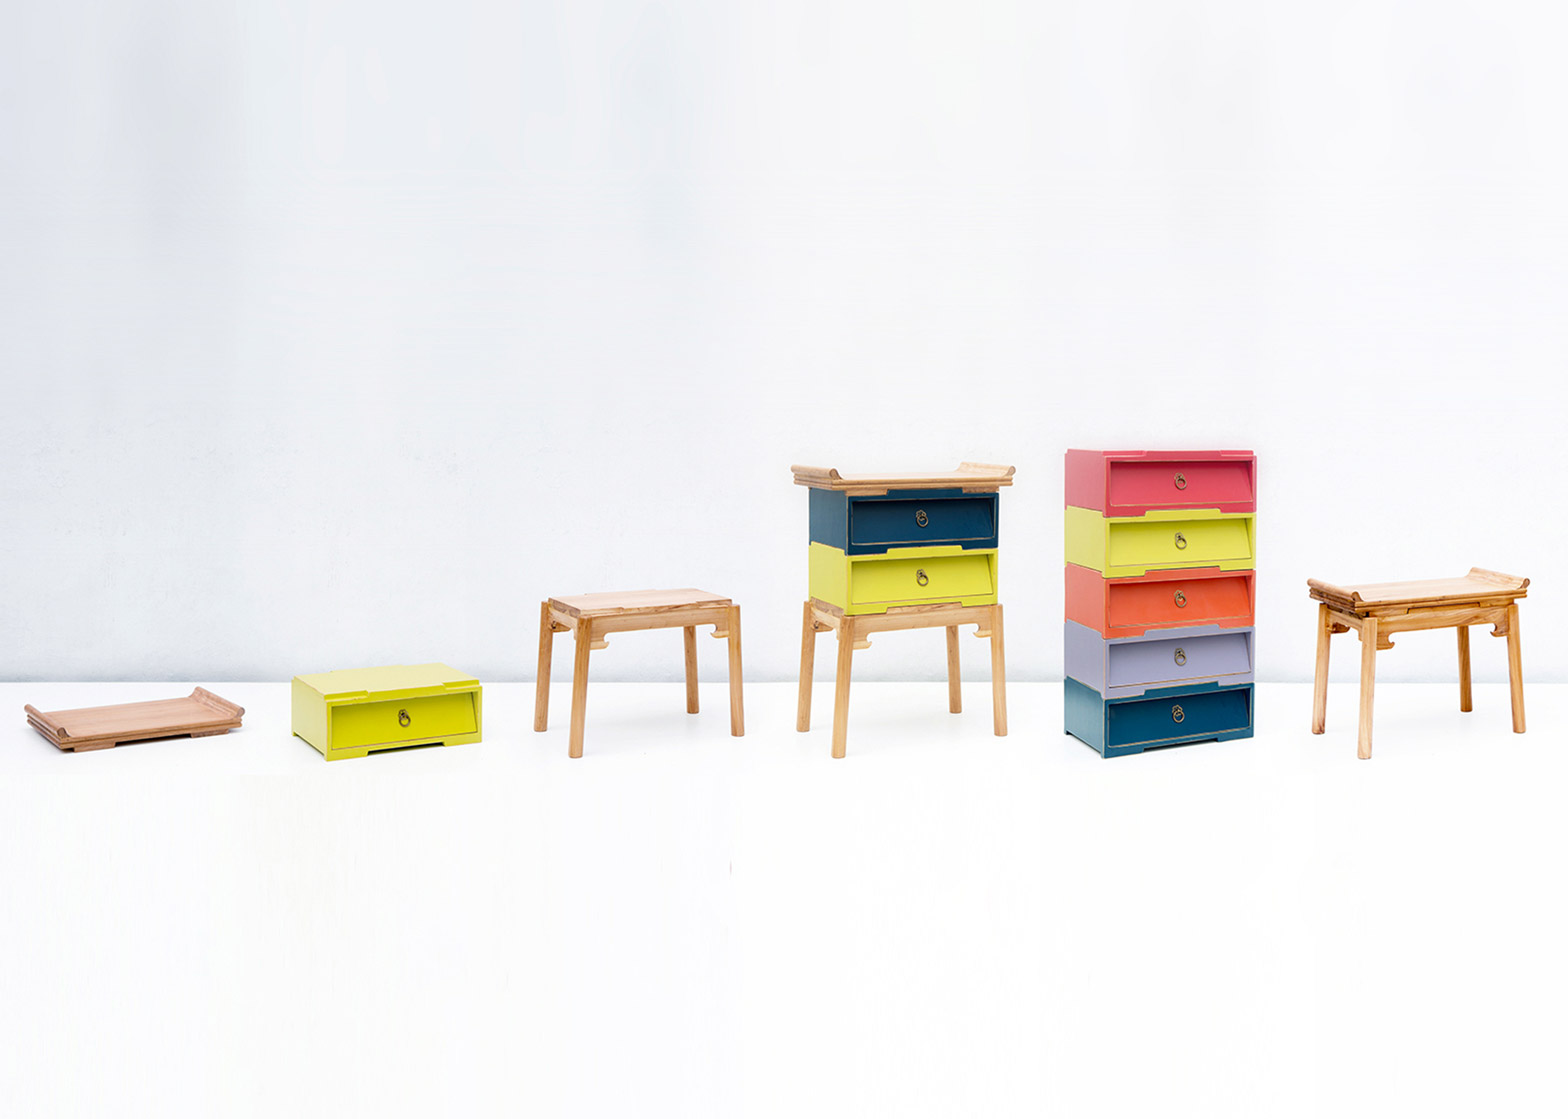 Shang furniture system by Scene Shang